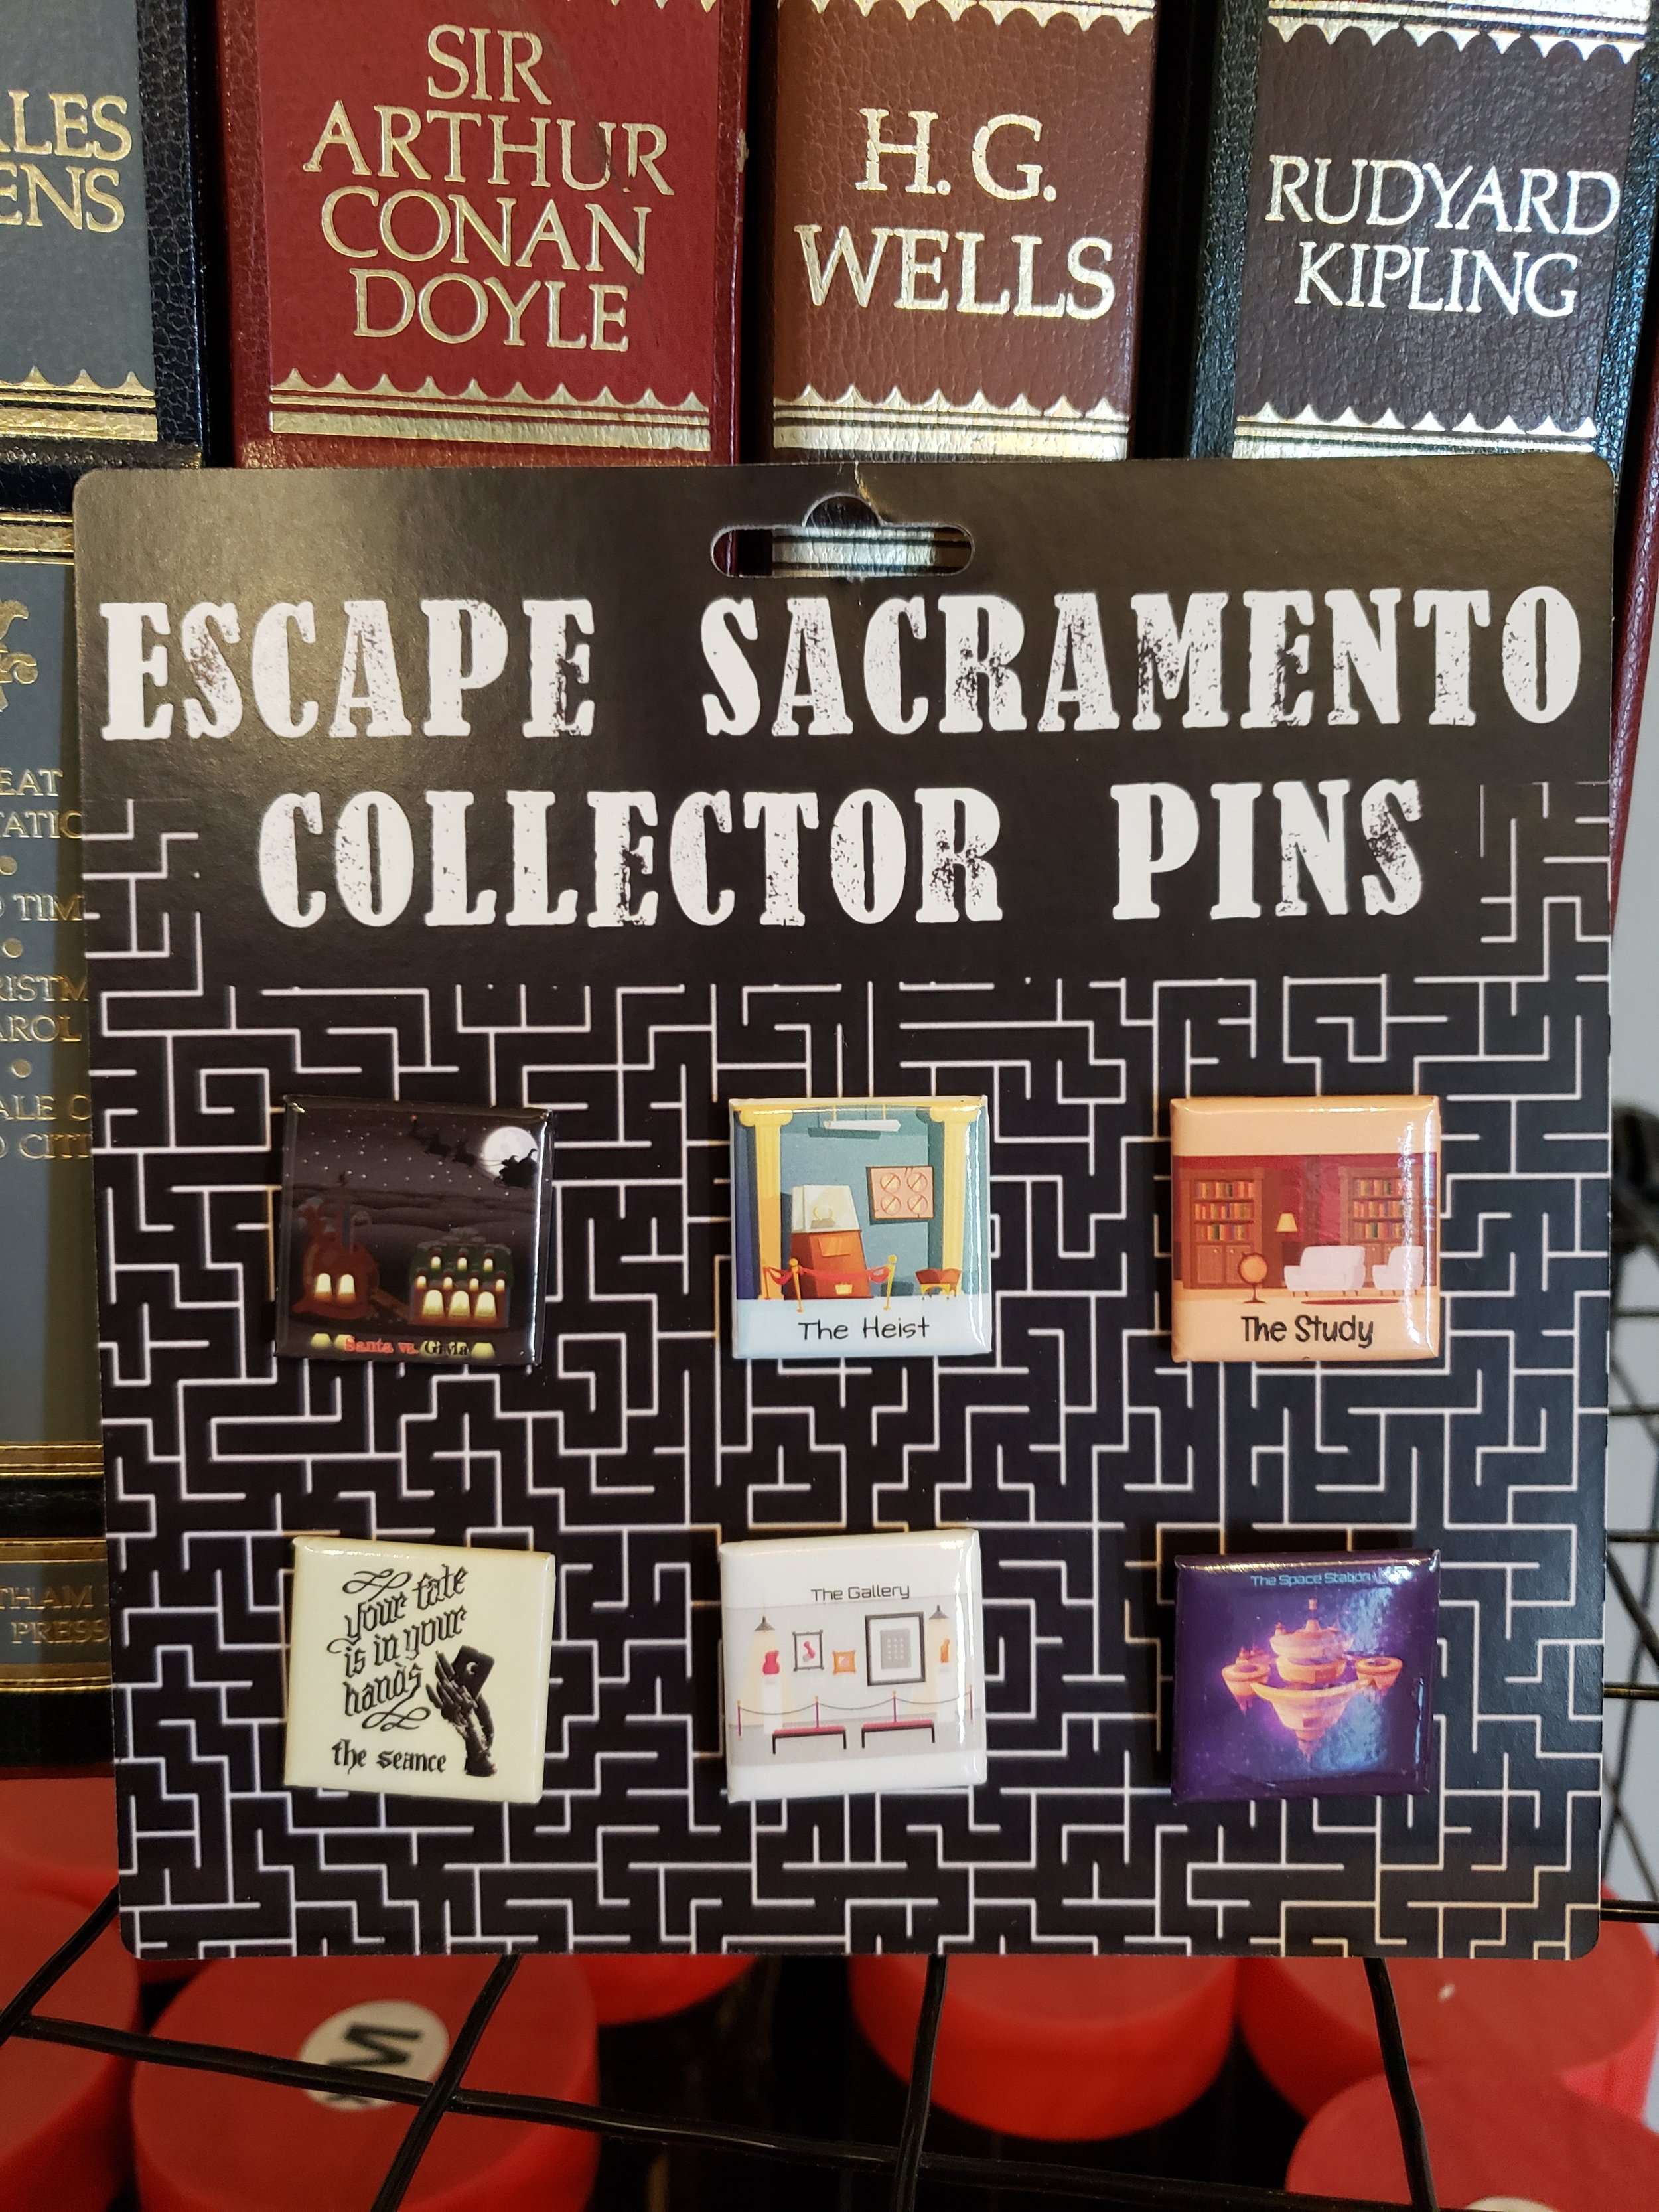 For our big reveal….DUN DUN DUN!!! This is our Escape Sacramento Collector Pin set. Each pin represents the games that we have debuted over time, here at Escape Sacramento. Santa vs. Gryla, The Heist, The Study, The Seance, The Gallery and The Space Station. $12